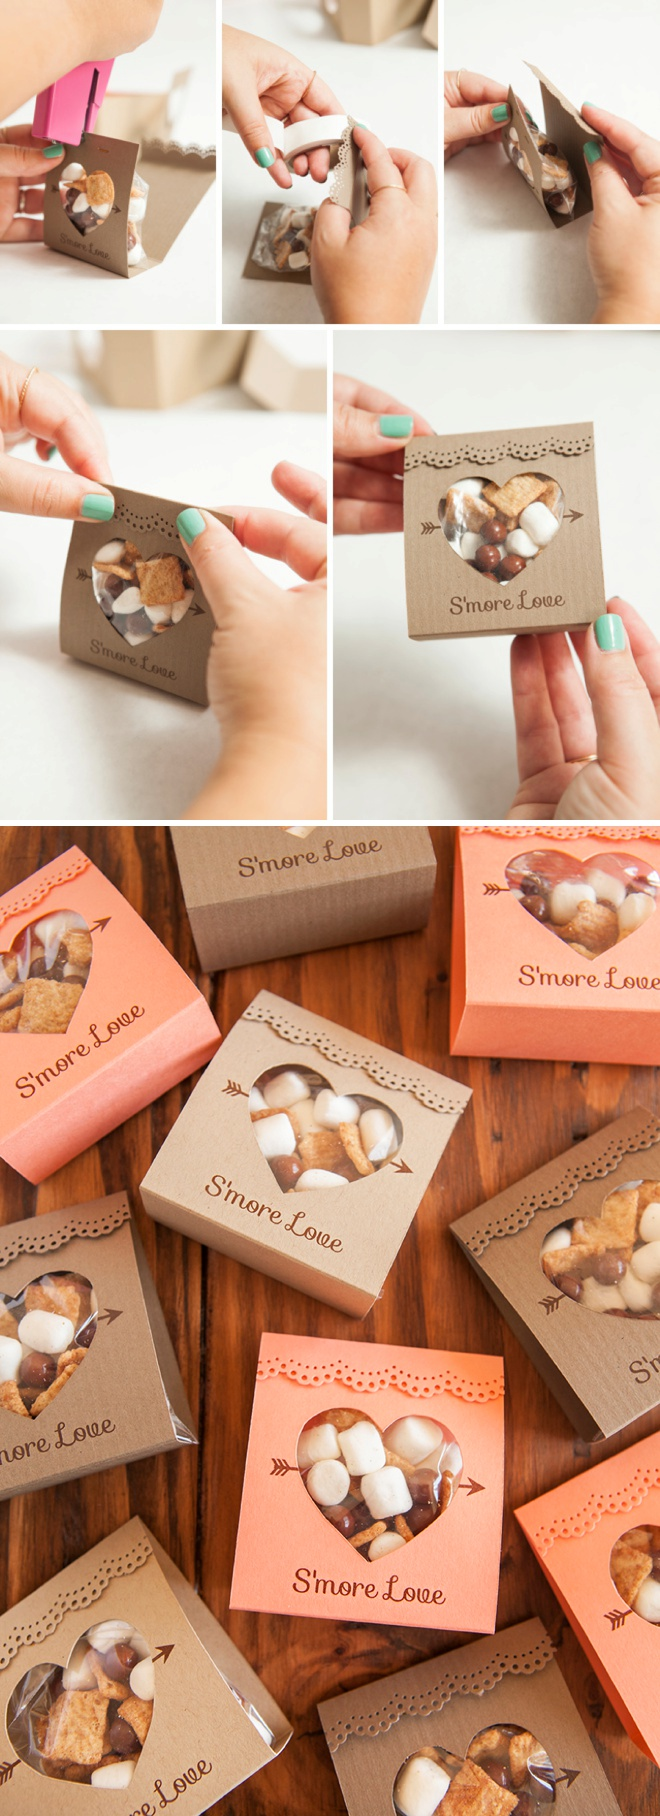 How to make these adorable smore love wedding favors adorable idea for smores wedding favors so unique free design too junglespirit